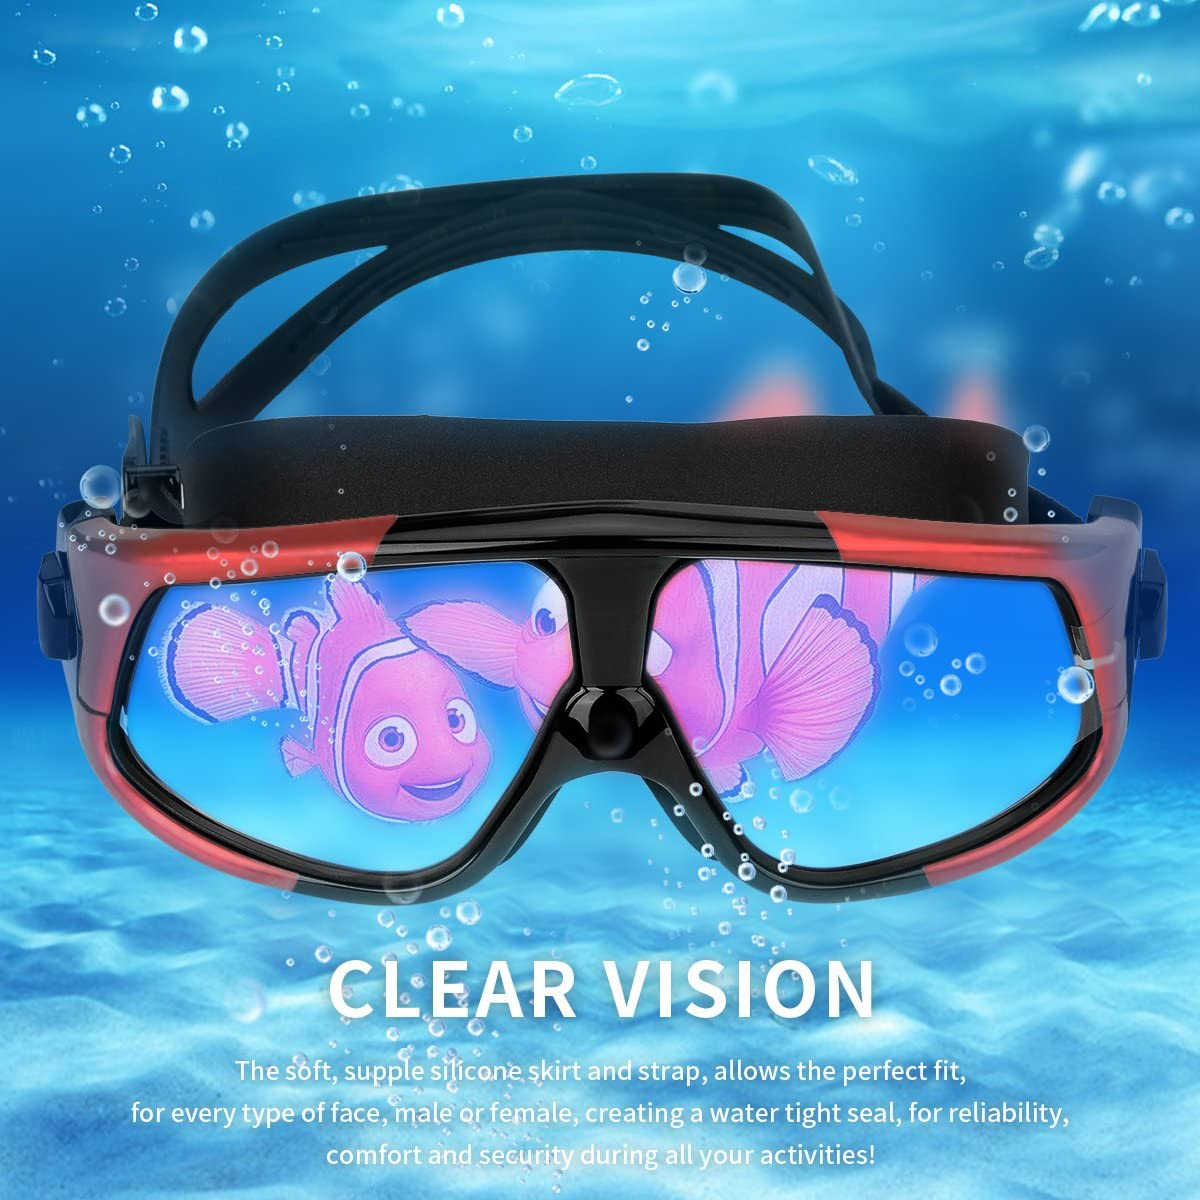 NIAFEYA Professional Swim Goggles No Leaking Adjustable Fit Anti-Fog Waterproof UV Protection Wide View Swimming Goggles for Adult Women Men Red//Black